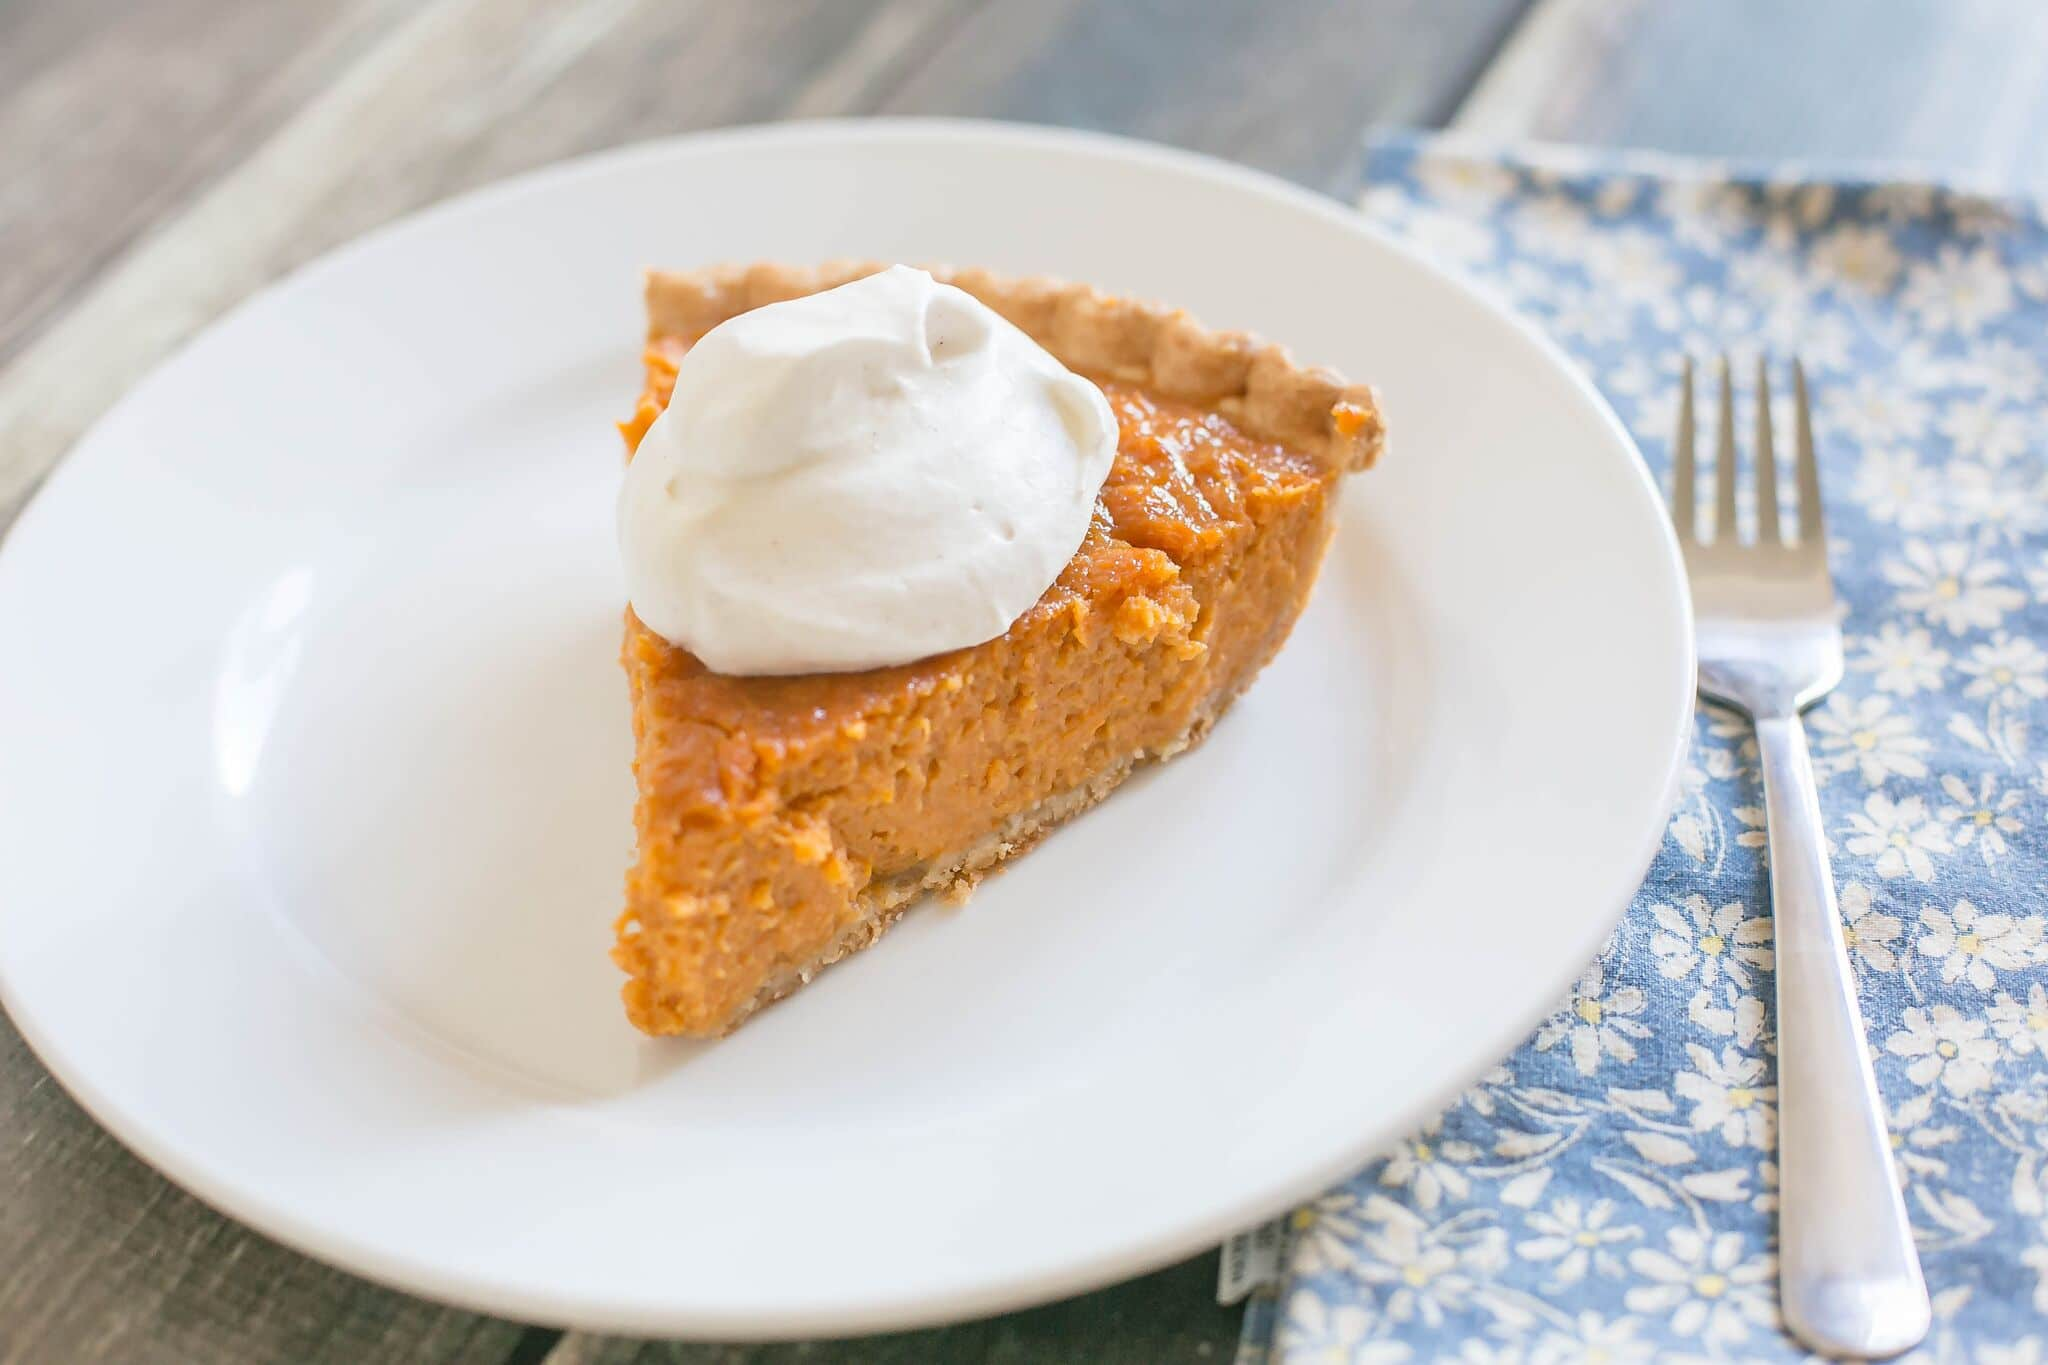 Slice pie and serve with maple whipped cream and enjoy!